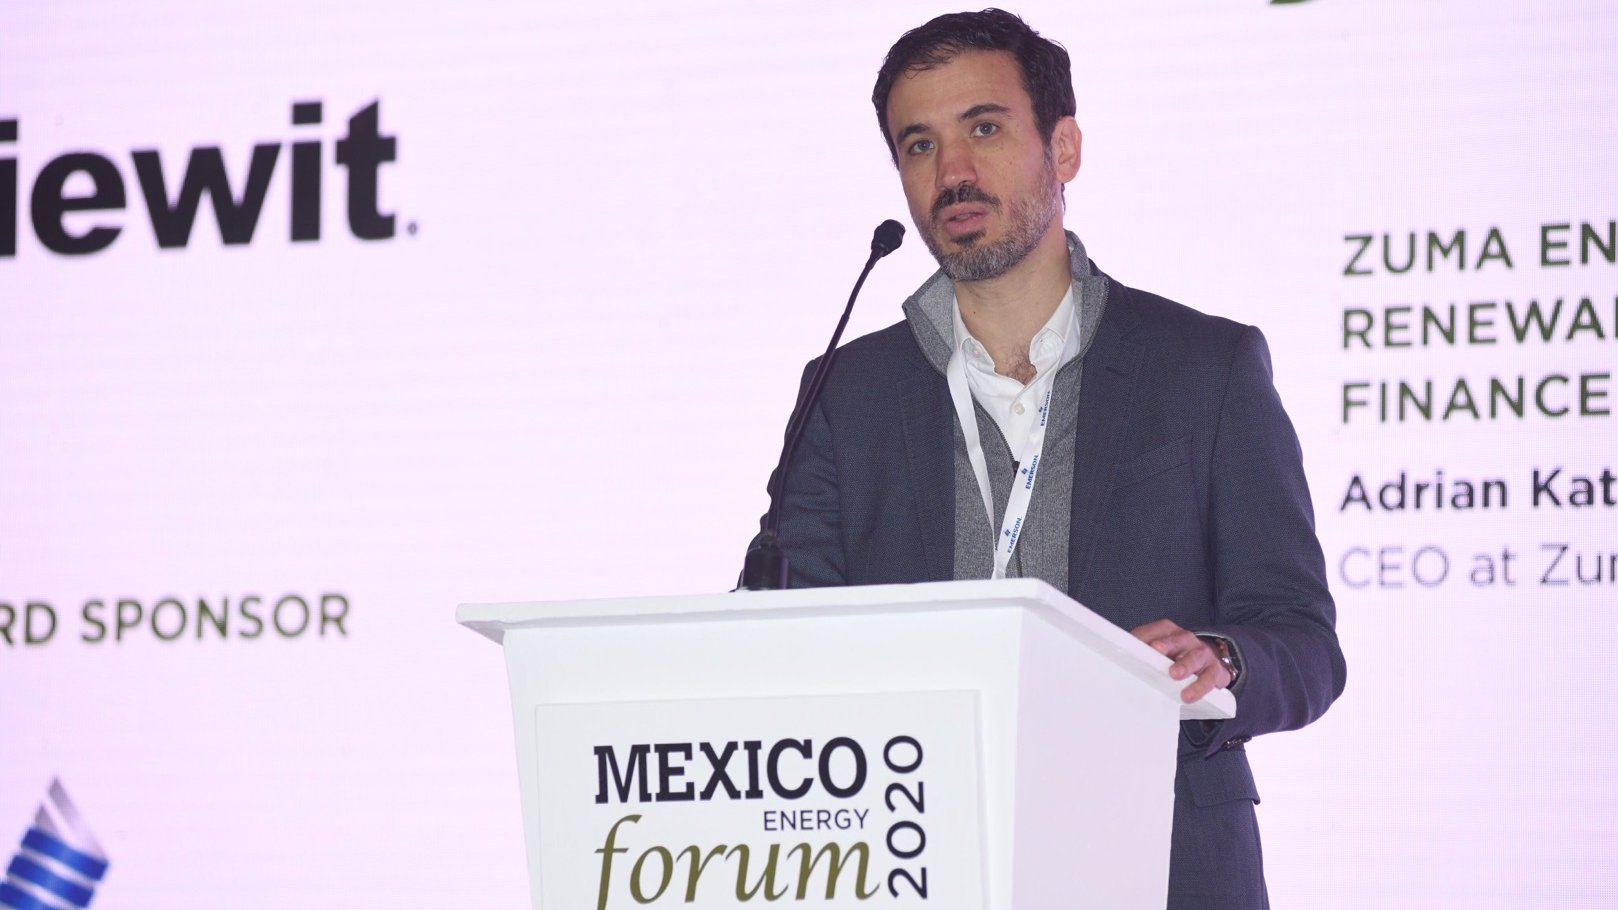 Adrian Katzew, Zuma Energia, Mexico Energy Forum, Mexico Energy Forum 2020,